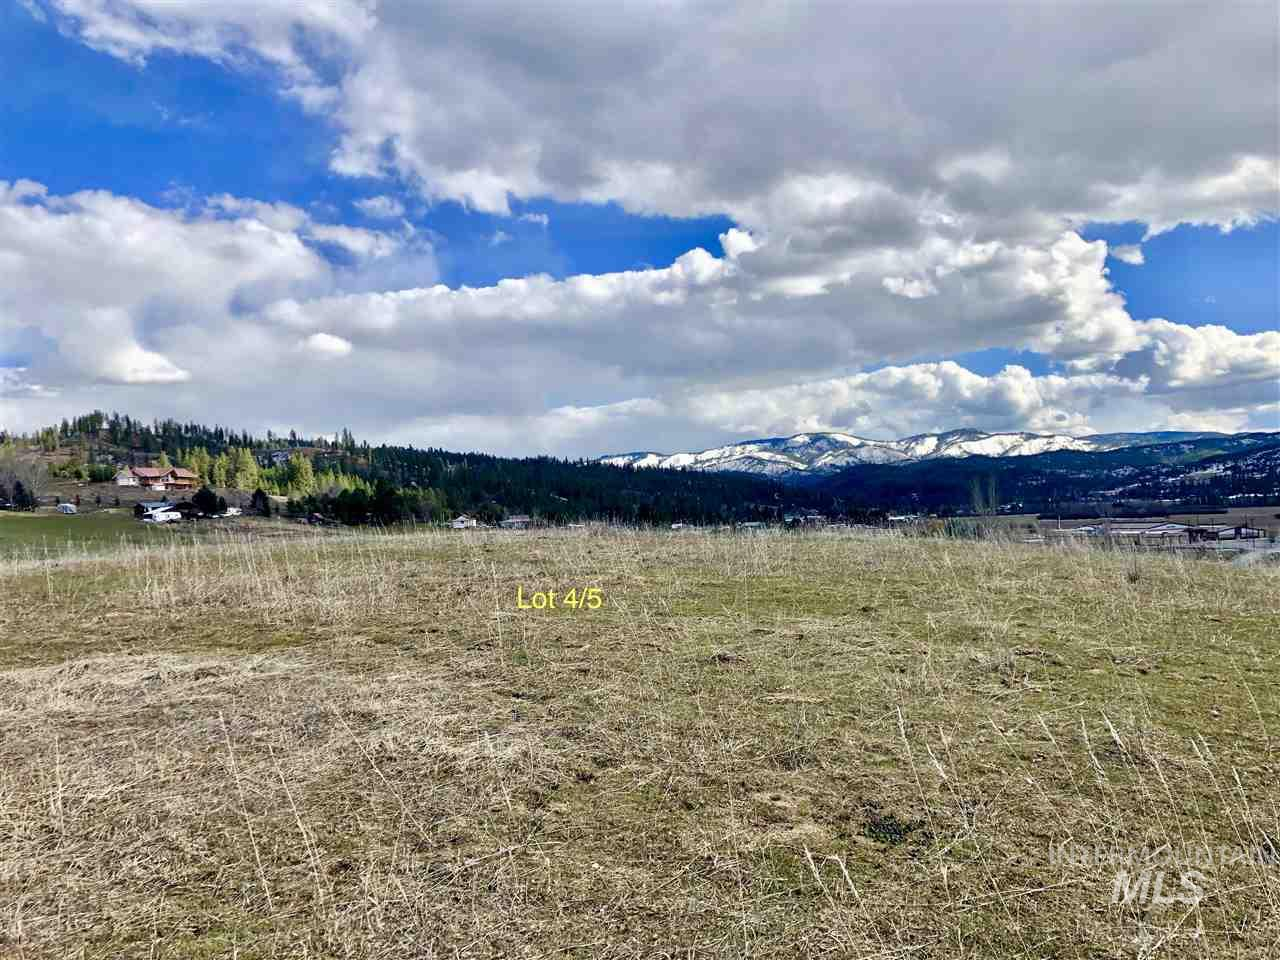 TBD 7 Banks Lowman Rd, Garden Valley, Idaho 83622, Land For Sale, Price $149,500, 98716391